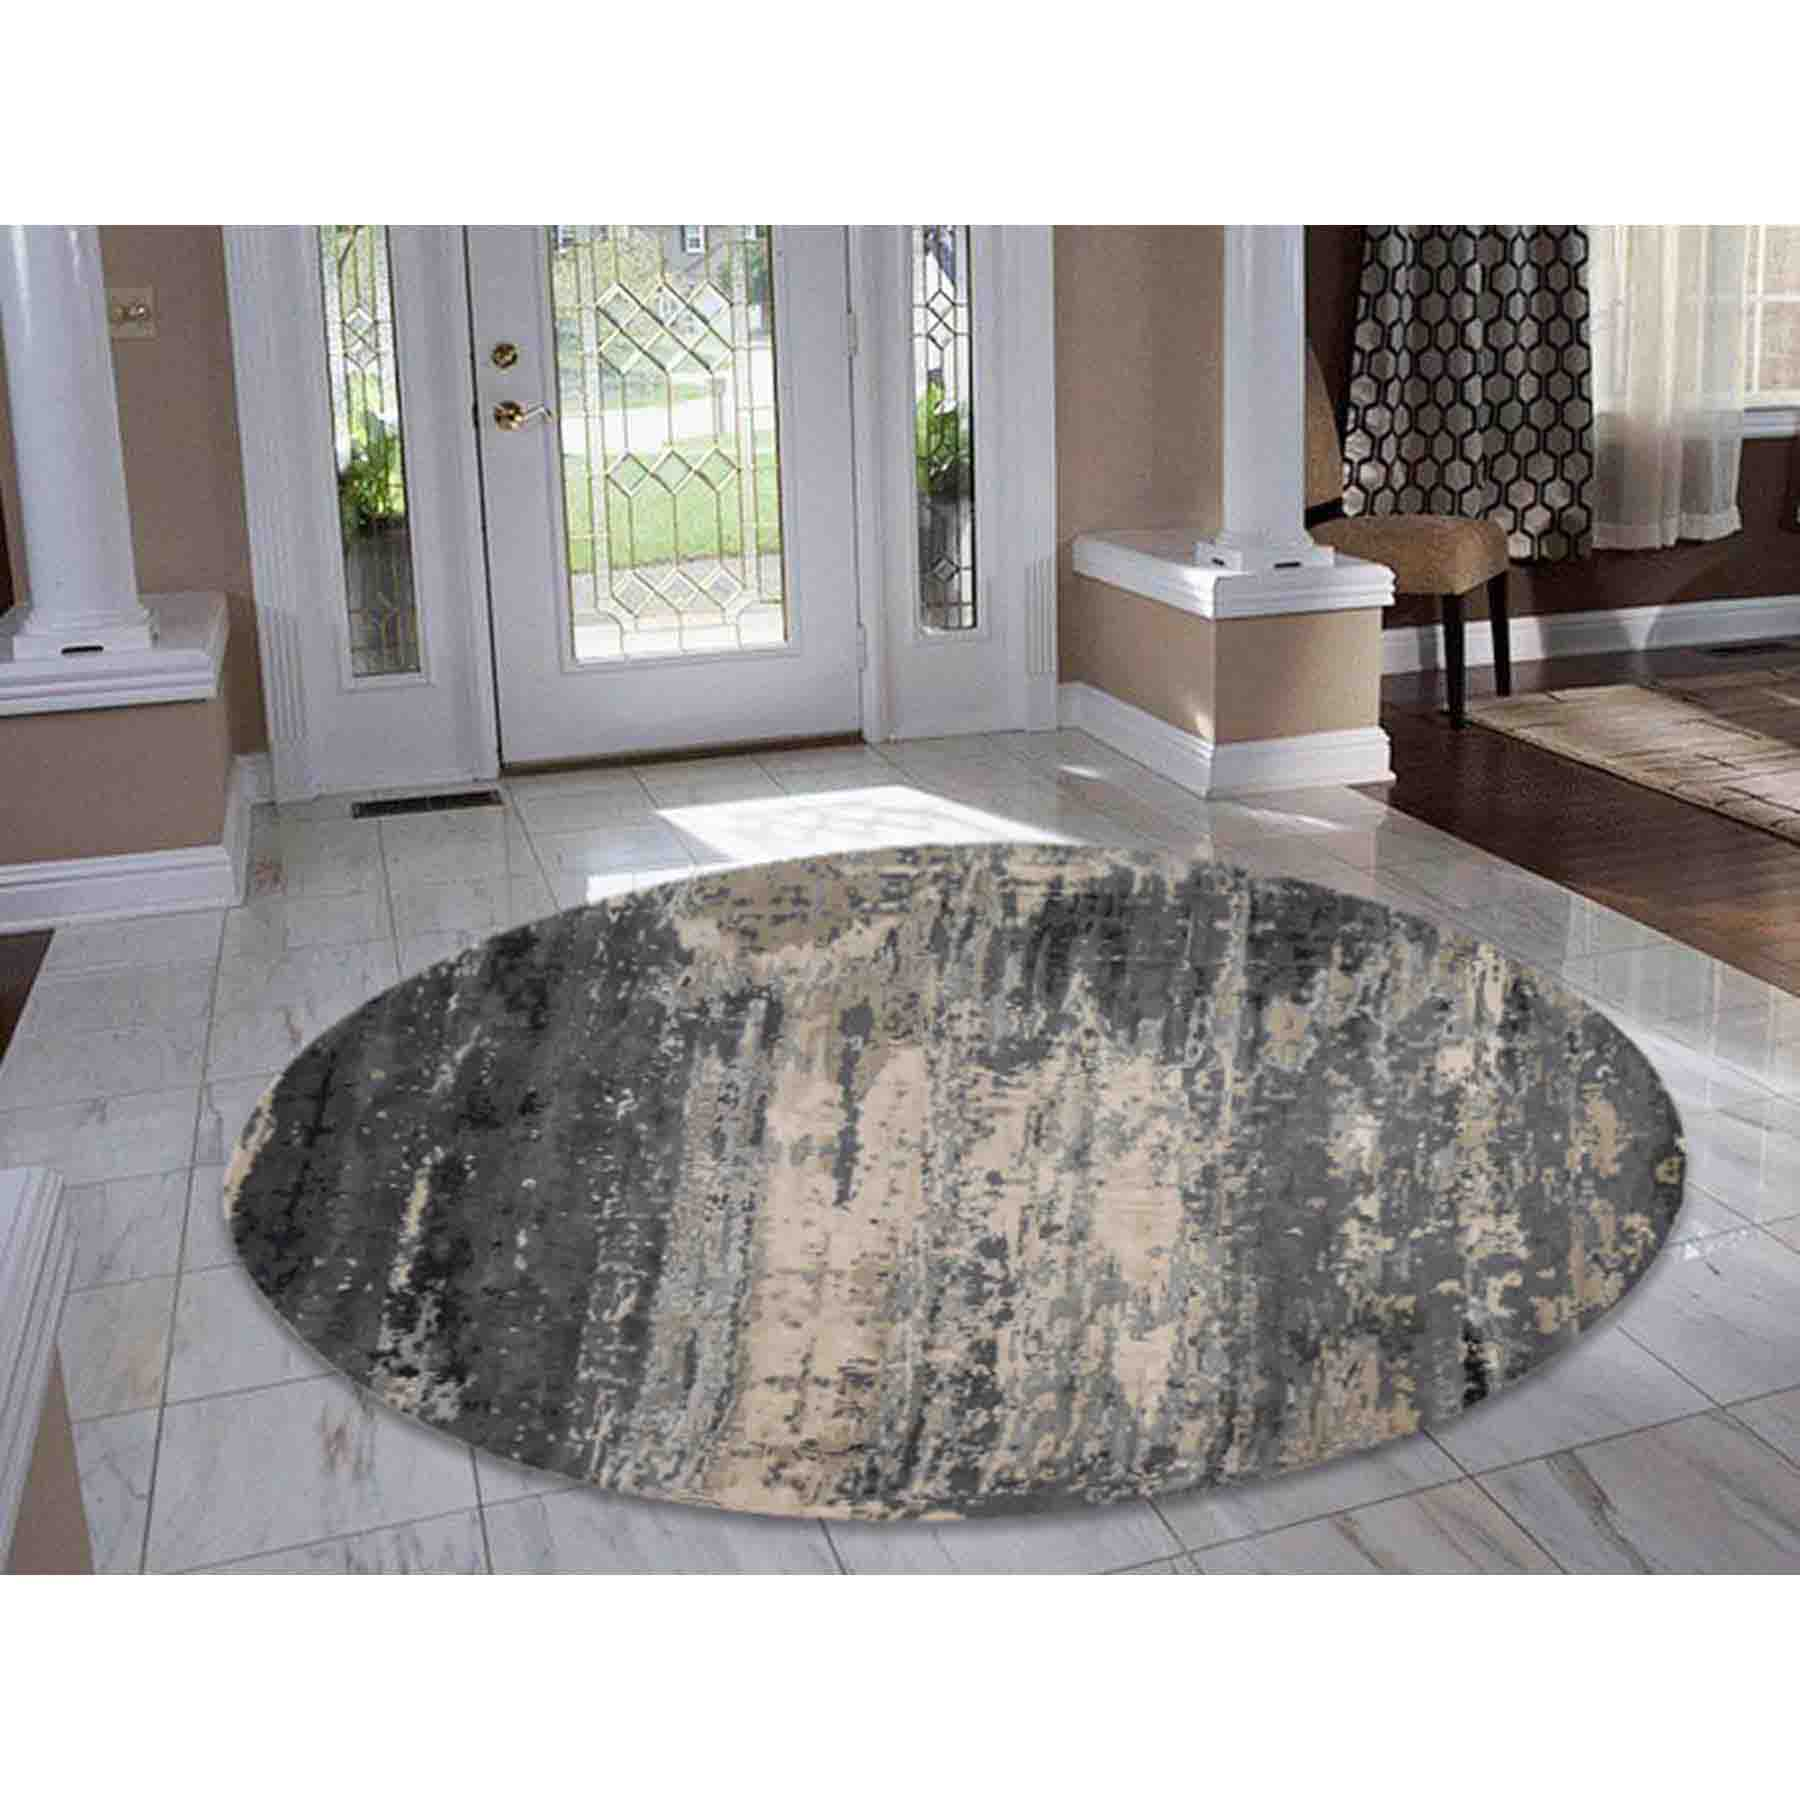 Oriental Rug Modern Living Room: Hand-Knotted Round Wool And Silk Abstract Design Oriental